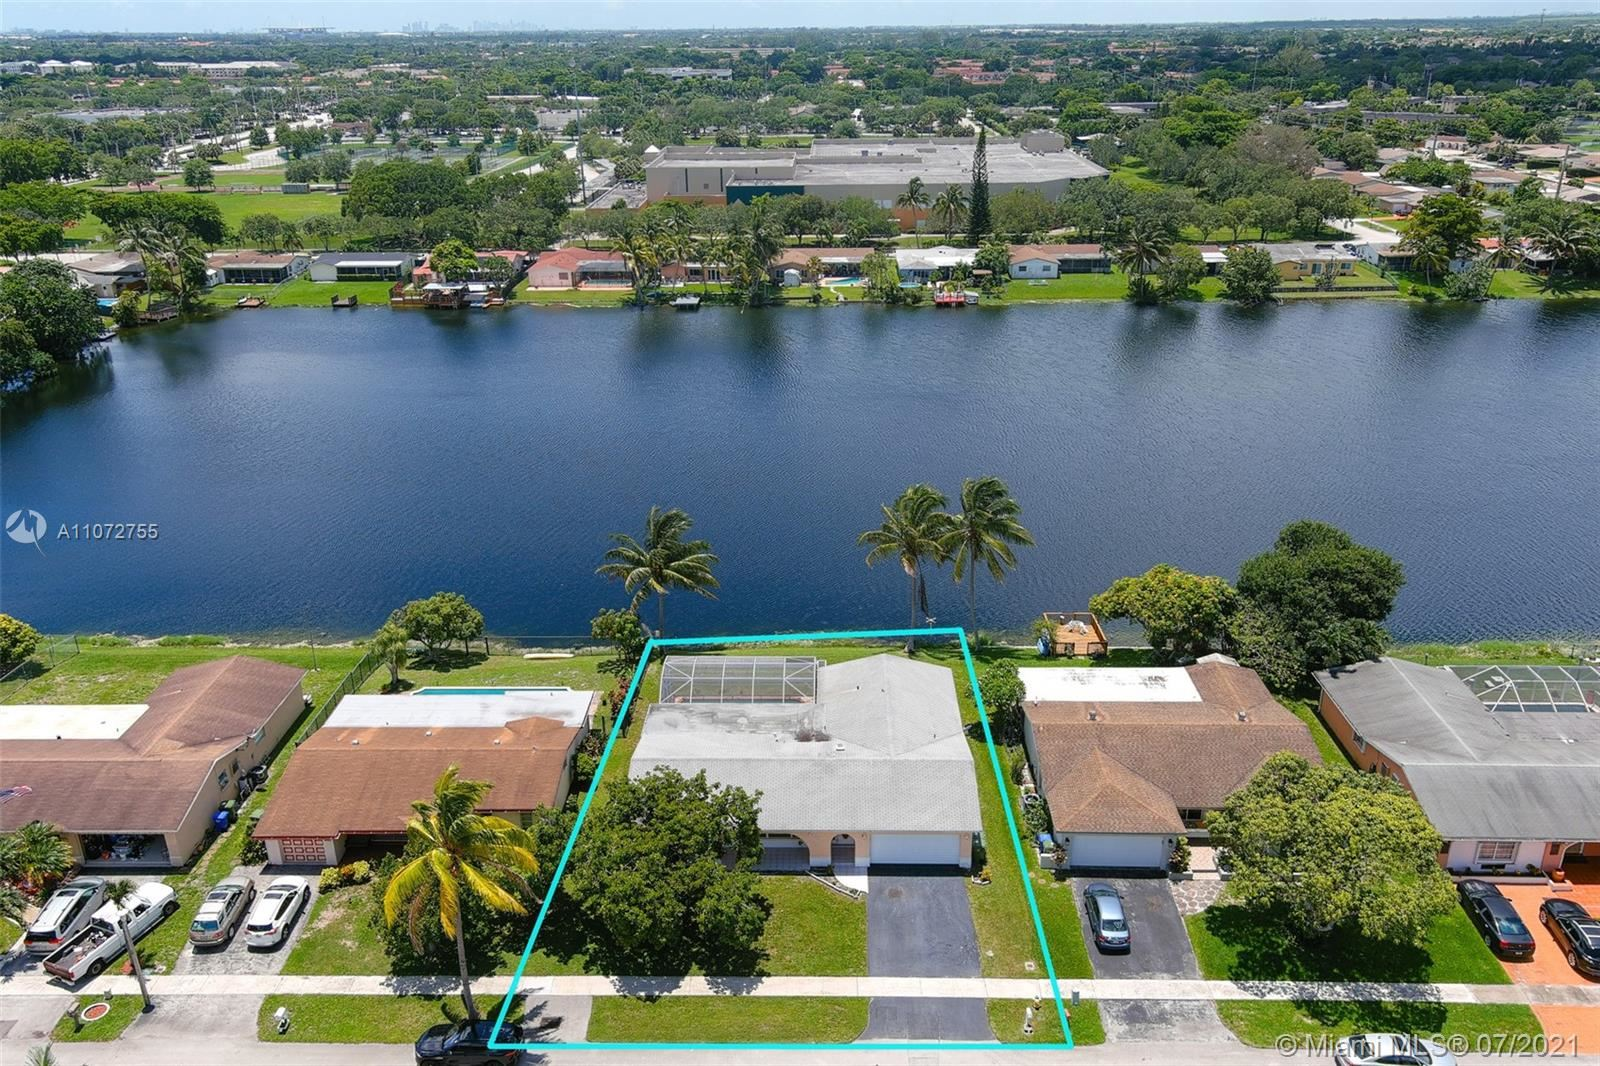 Photo of 8960 NW 7th Ct, Pembroke Pines, FL 33024 (MLS # A11072755)